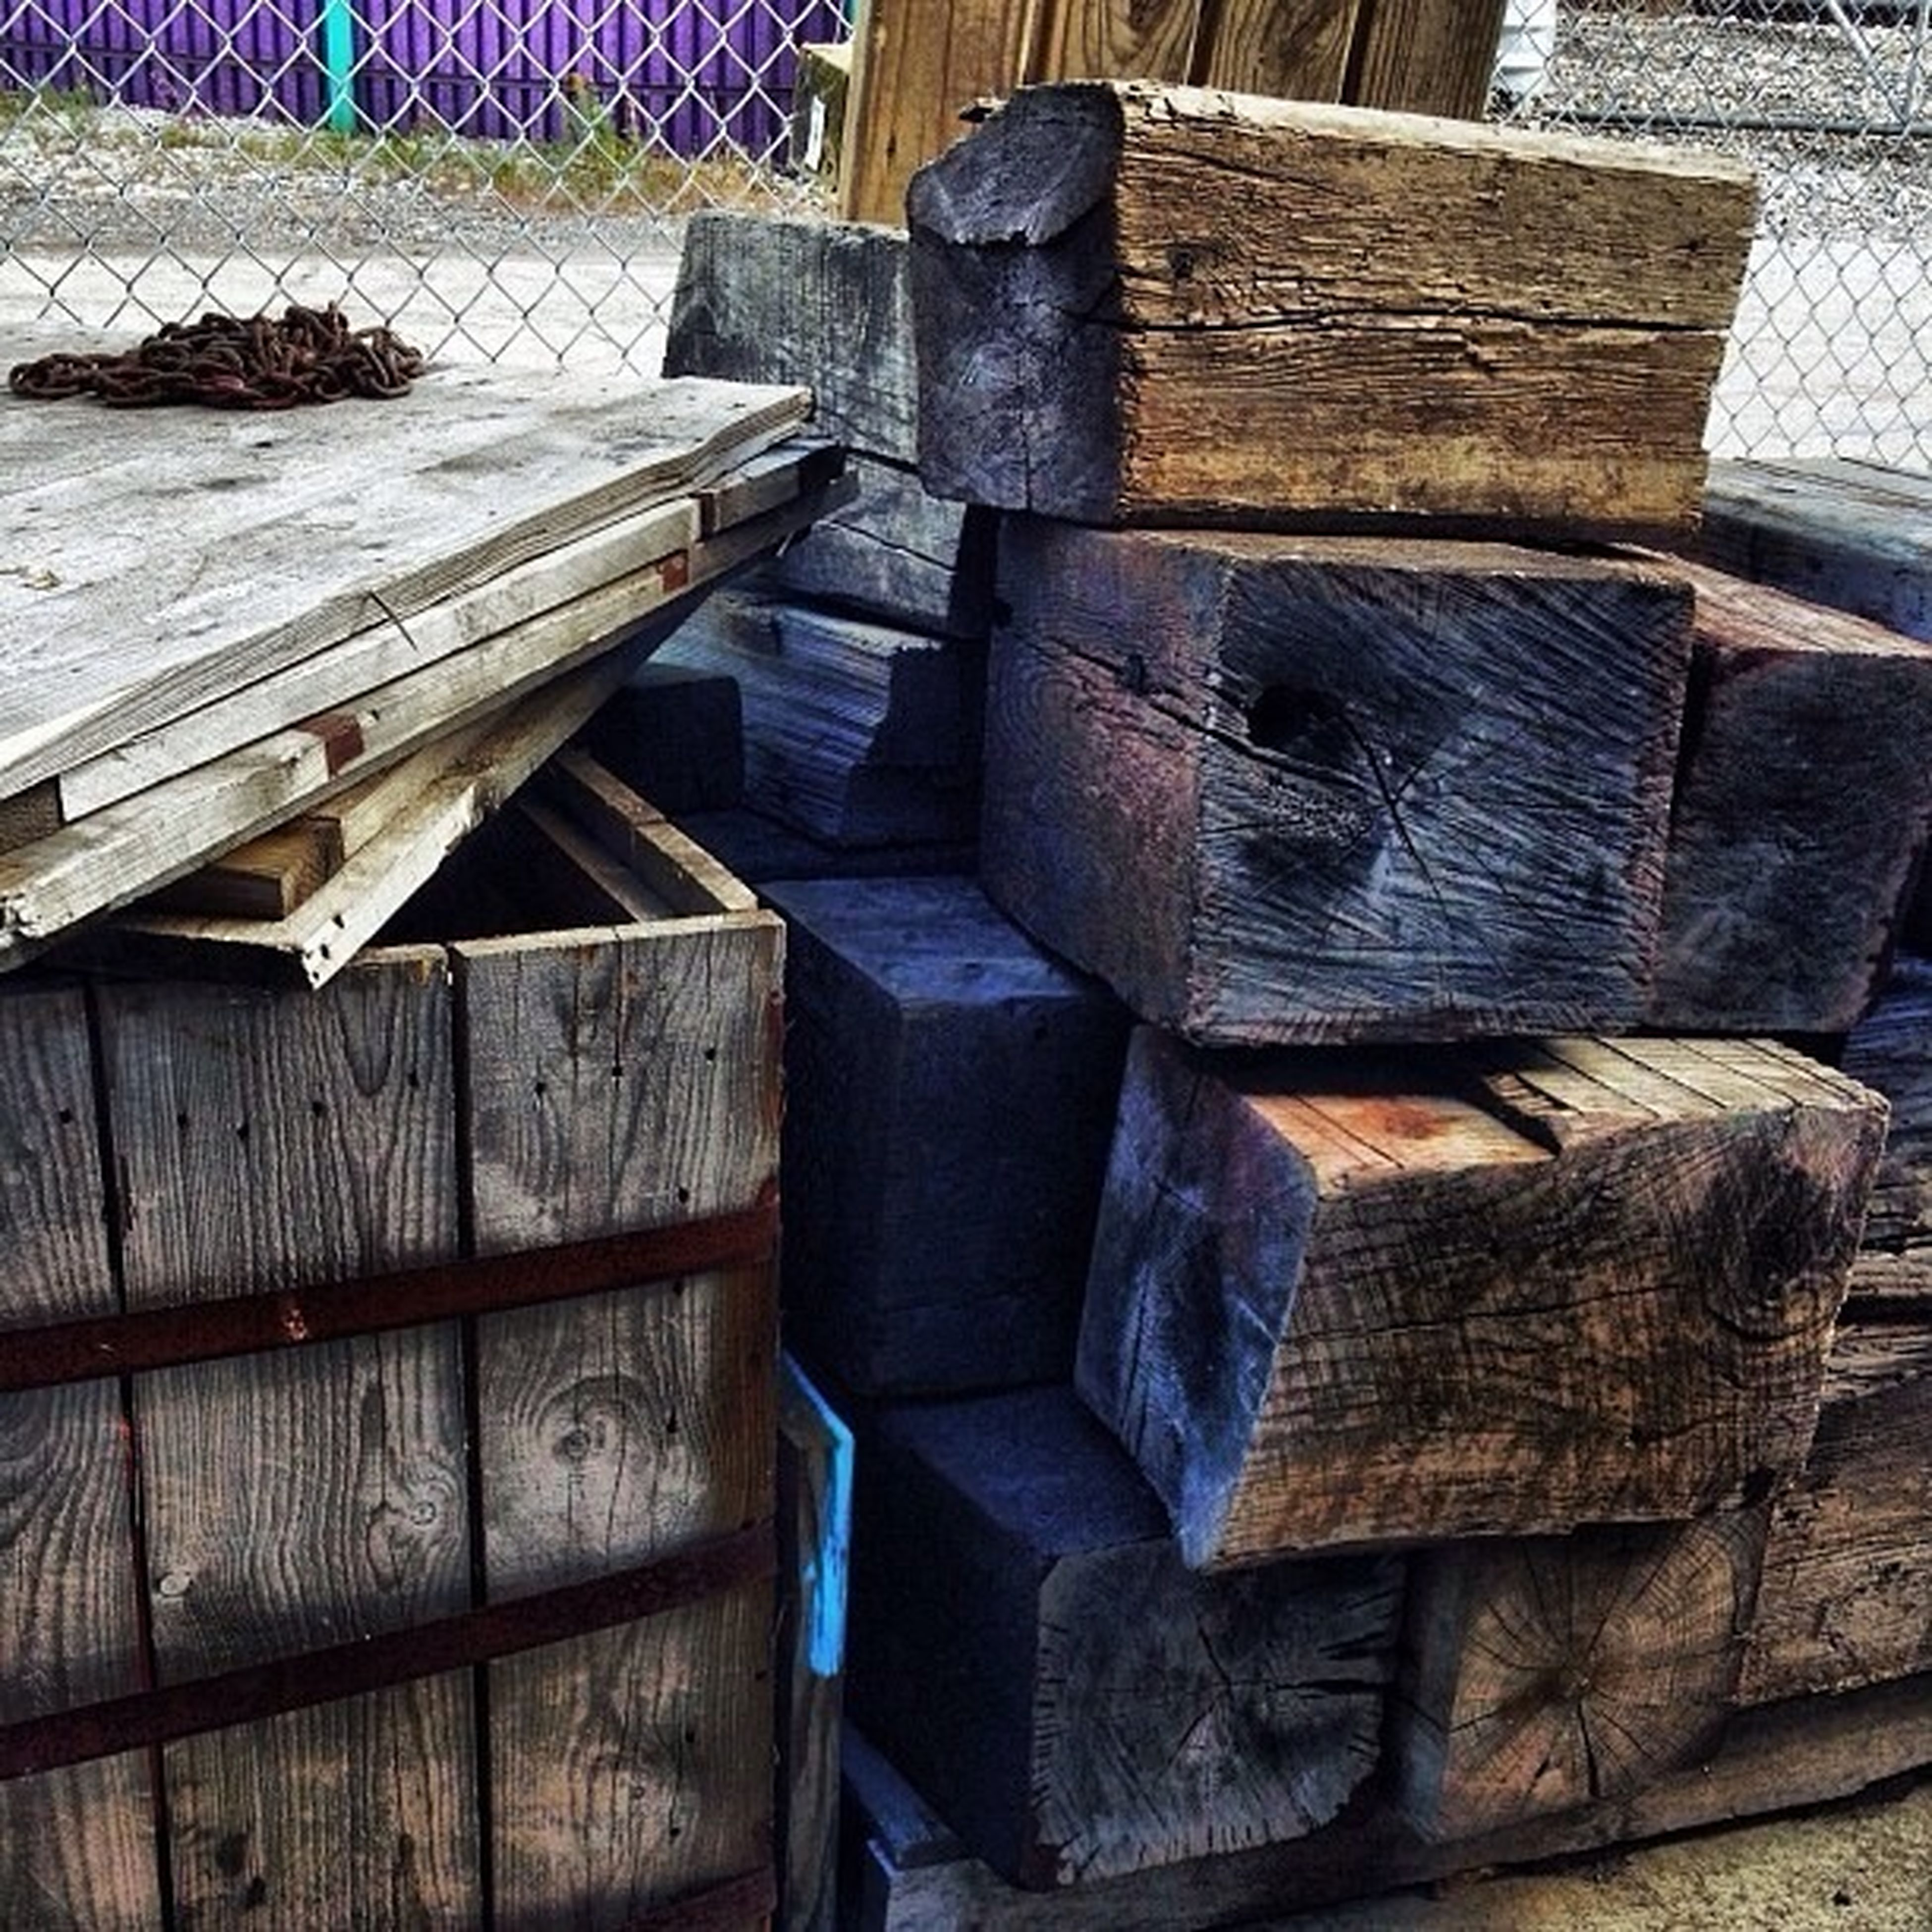 wood - material, large group of objects, high angle view, stack, wooden, wood, abundance, abandoned, old, day, outdoors, no people, obsolete, damaged, chair, in a row, sunlight, log, arrangement, industry